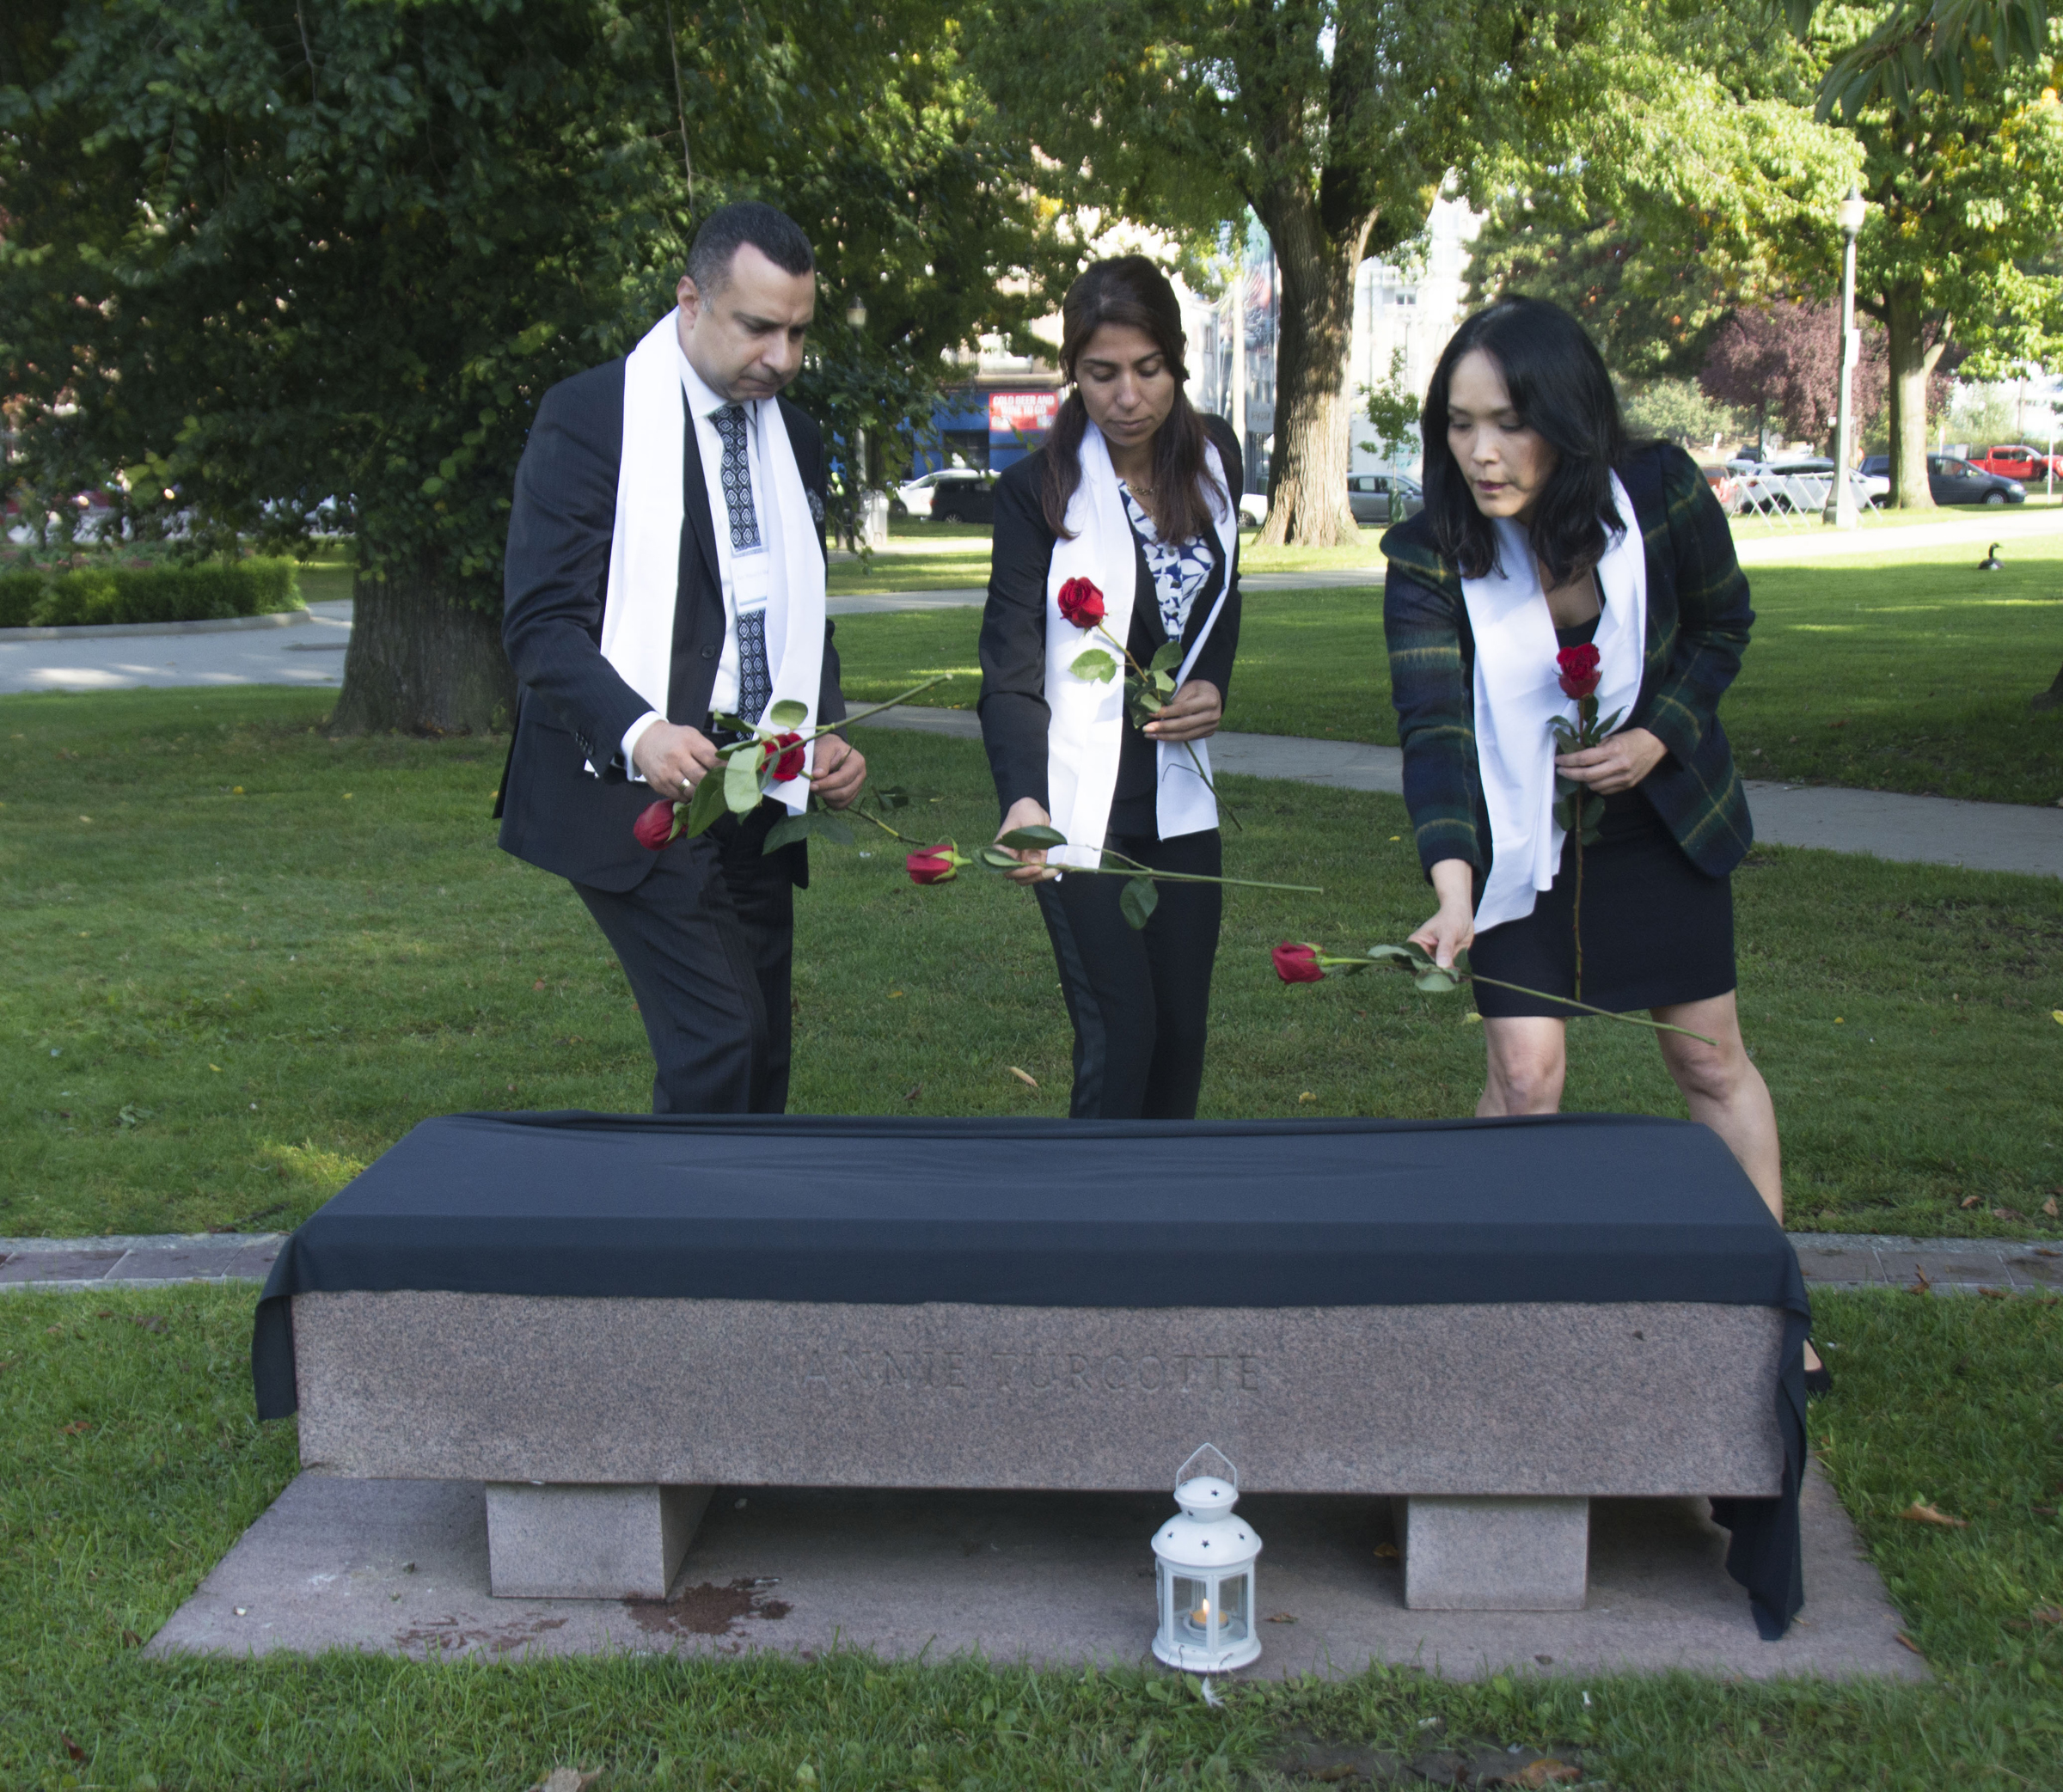 Placing roses on the veiled bench for Yazidi people who died in the genocide, starting August 3, 2014.Majed El Shafie of One Free World International with Adiba and MP Jenny Kwan (Vancouver East)